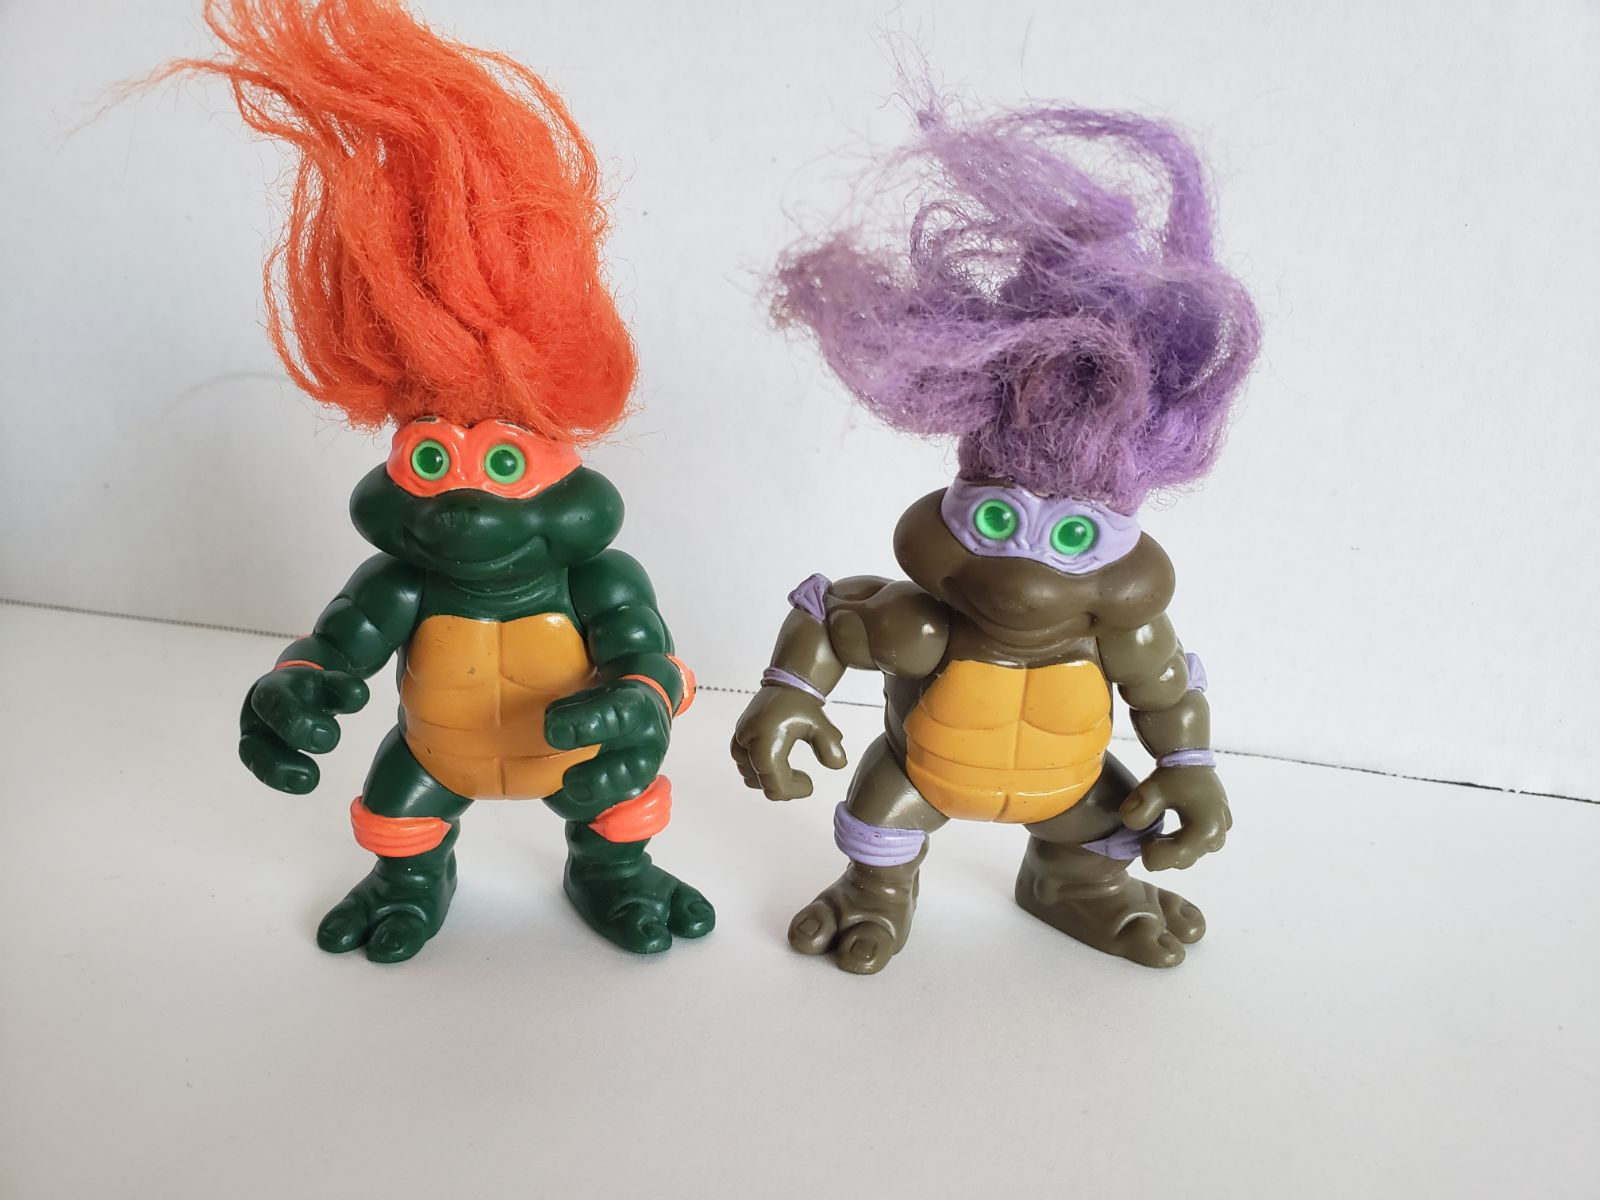 Teenage Mutant Ninja Turtles action figu